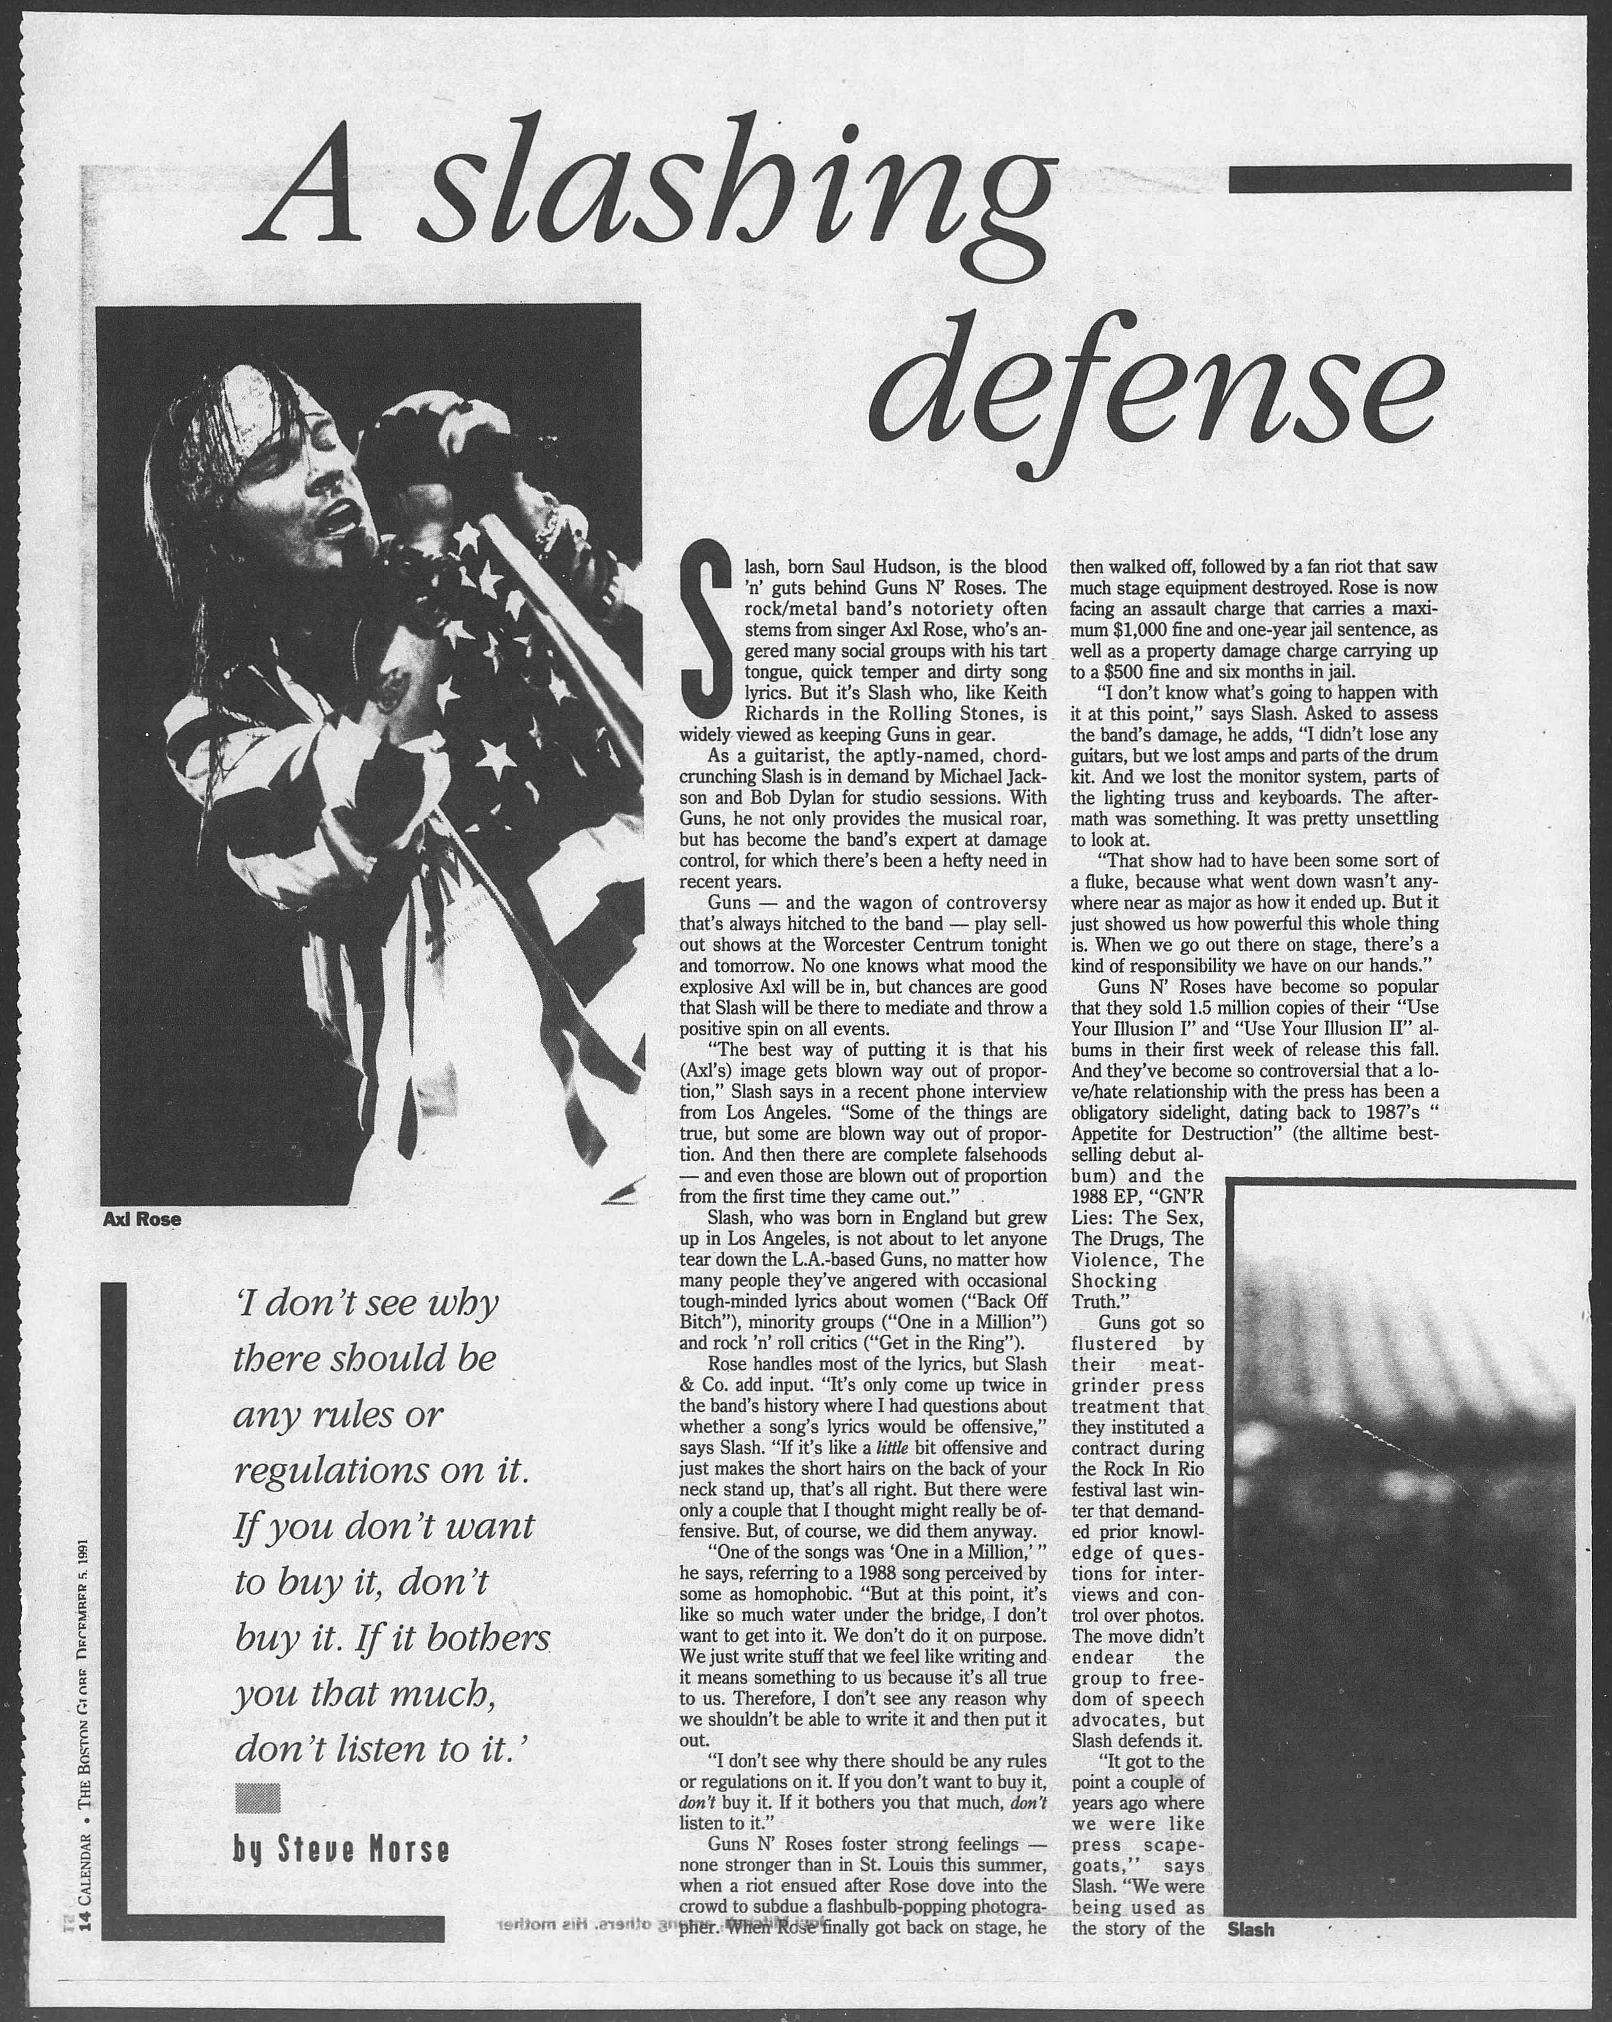 1991.12.05 - The Boston Globe - A Slashing Defense of Guns N' Roses (Slash) AOwJiX4y_o